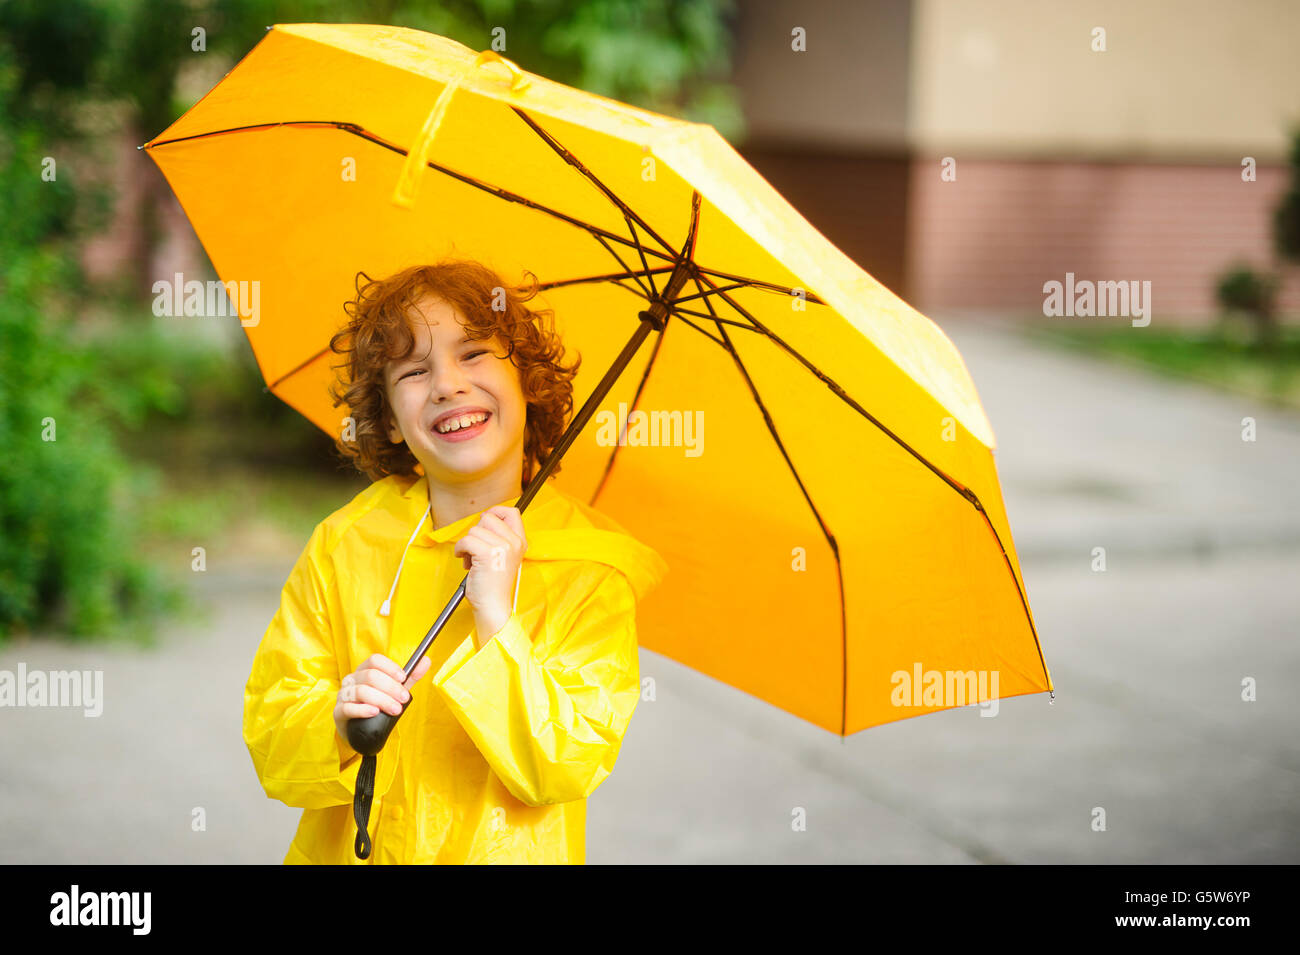 The cheerful boy under a yellow umbrella. The child with a smile looks in the camera having squinted. It has wild - Stock Image